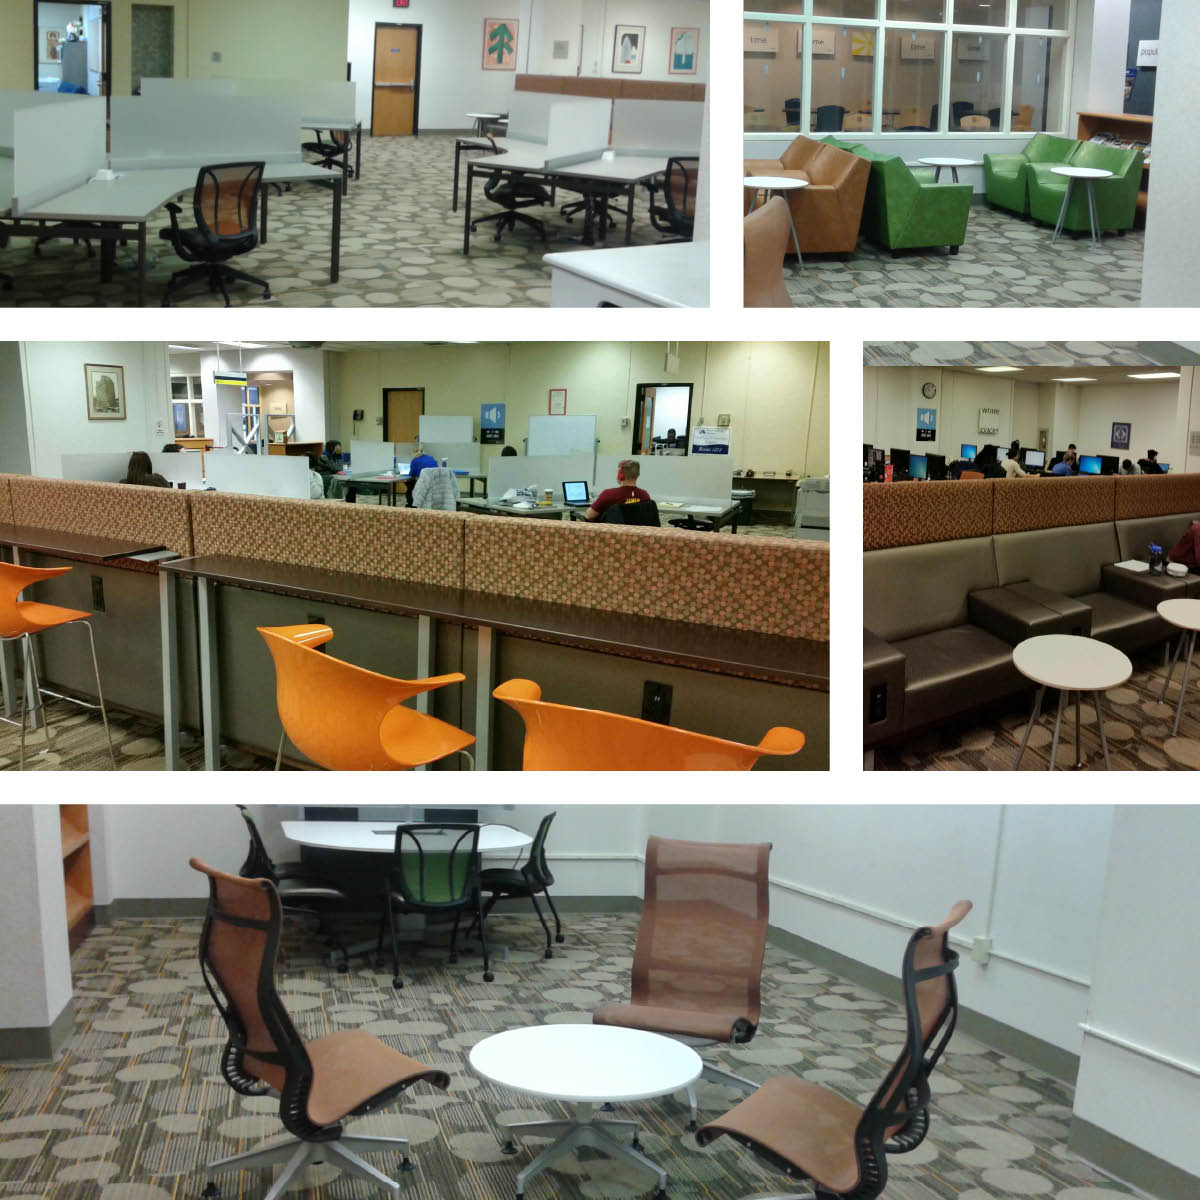 A collage of 6 images of upgrades made in Hahnemann Library. Top: new desks and new chairs, middle: new 'bar'seating and hightop chairs; Bottom: new group or solo study chairs and tables